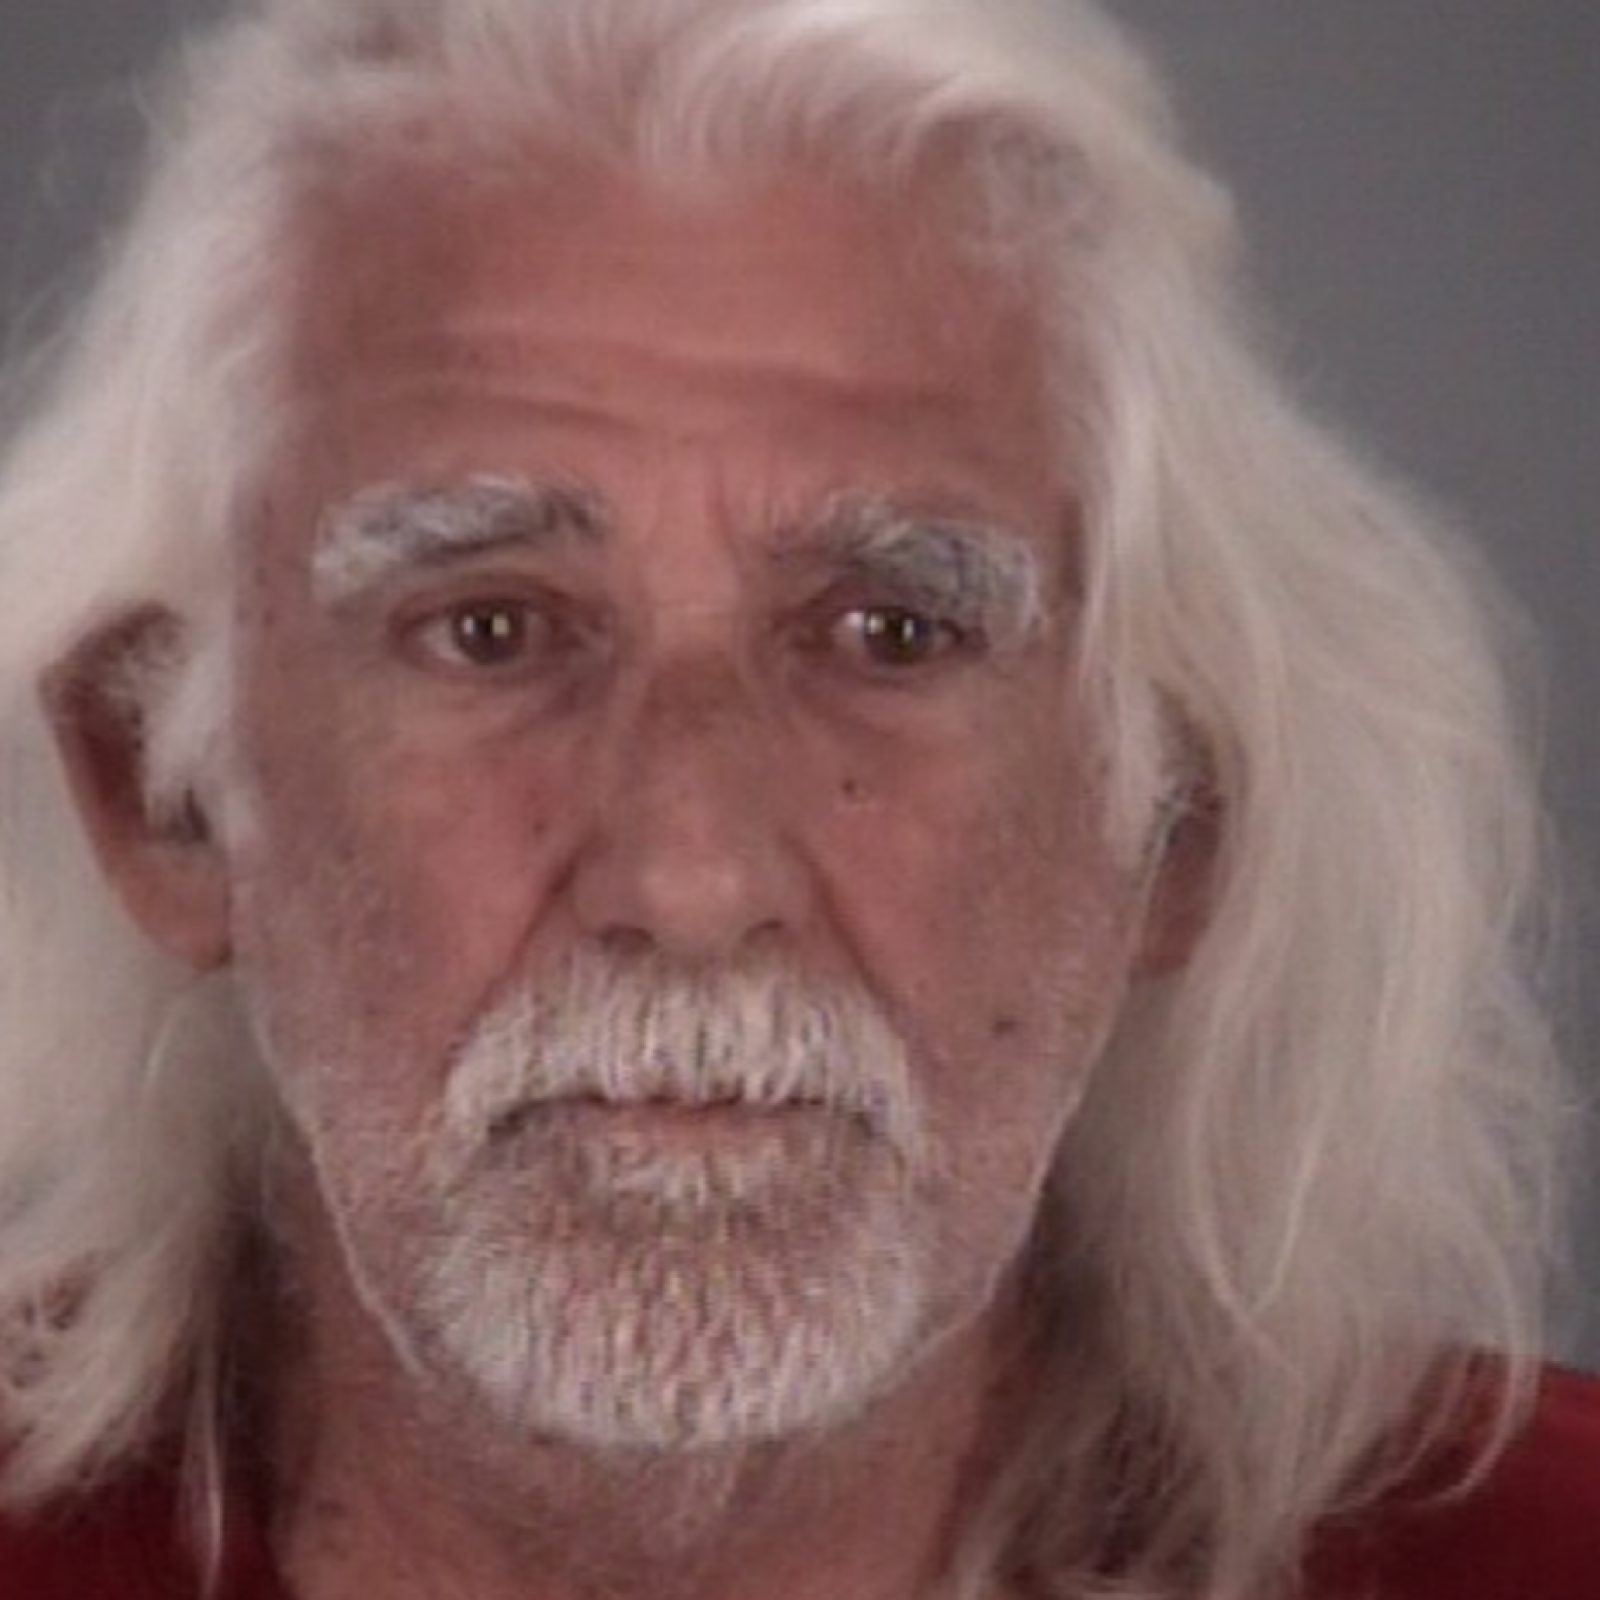 Florida Man Accused of Stealing $12,000 in Electricity to